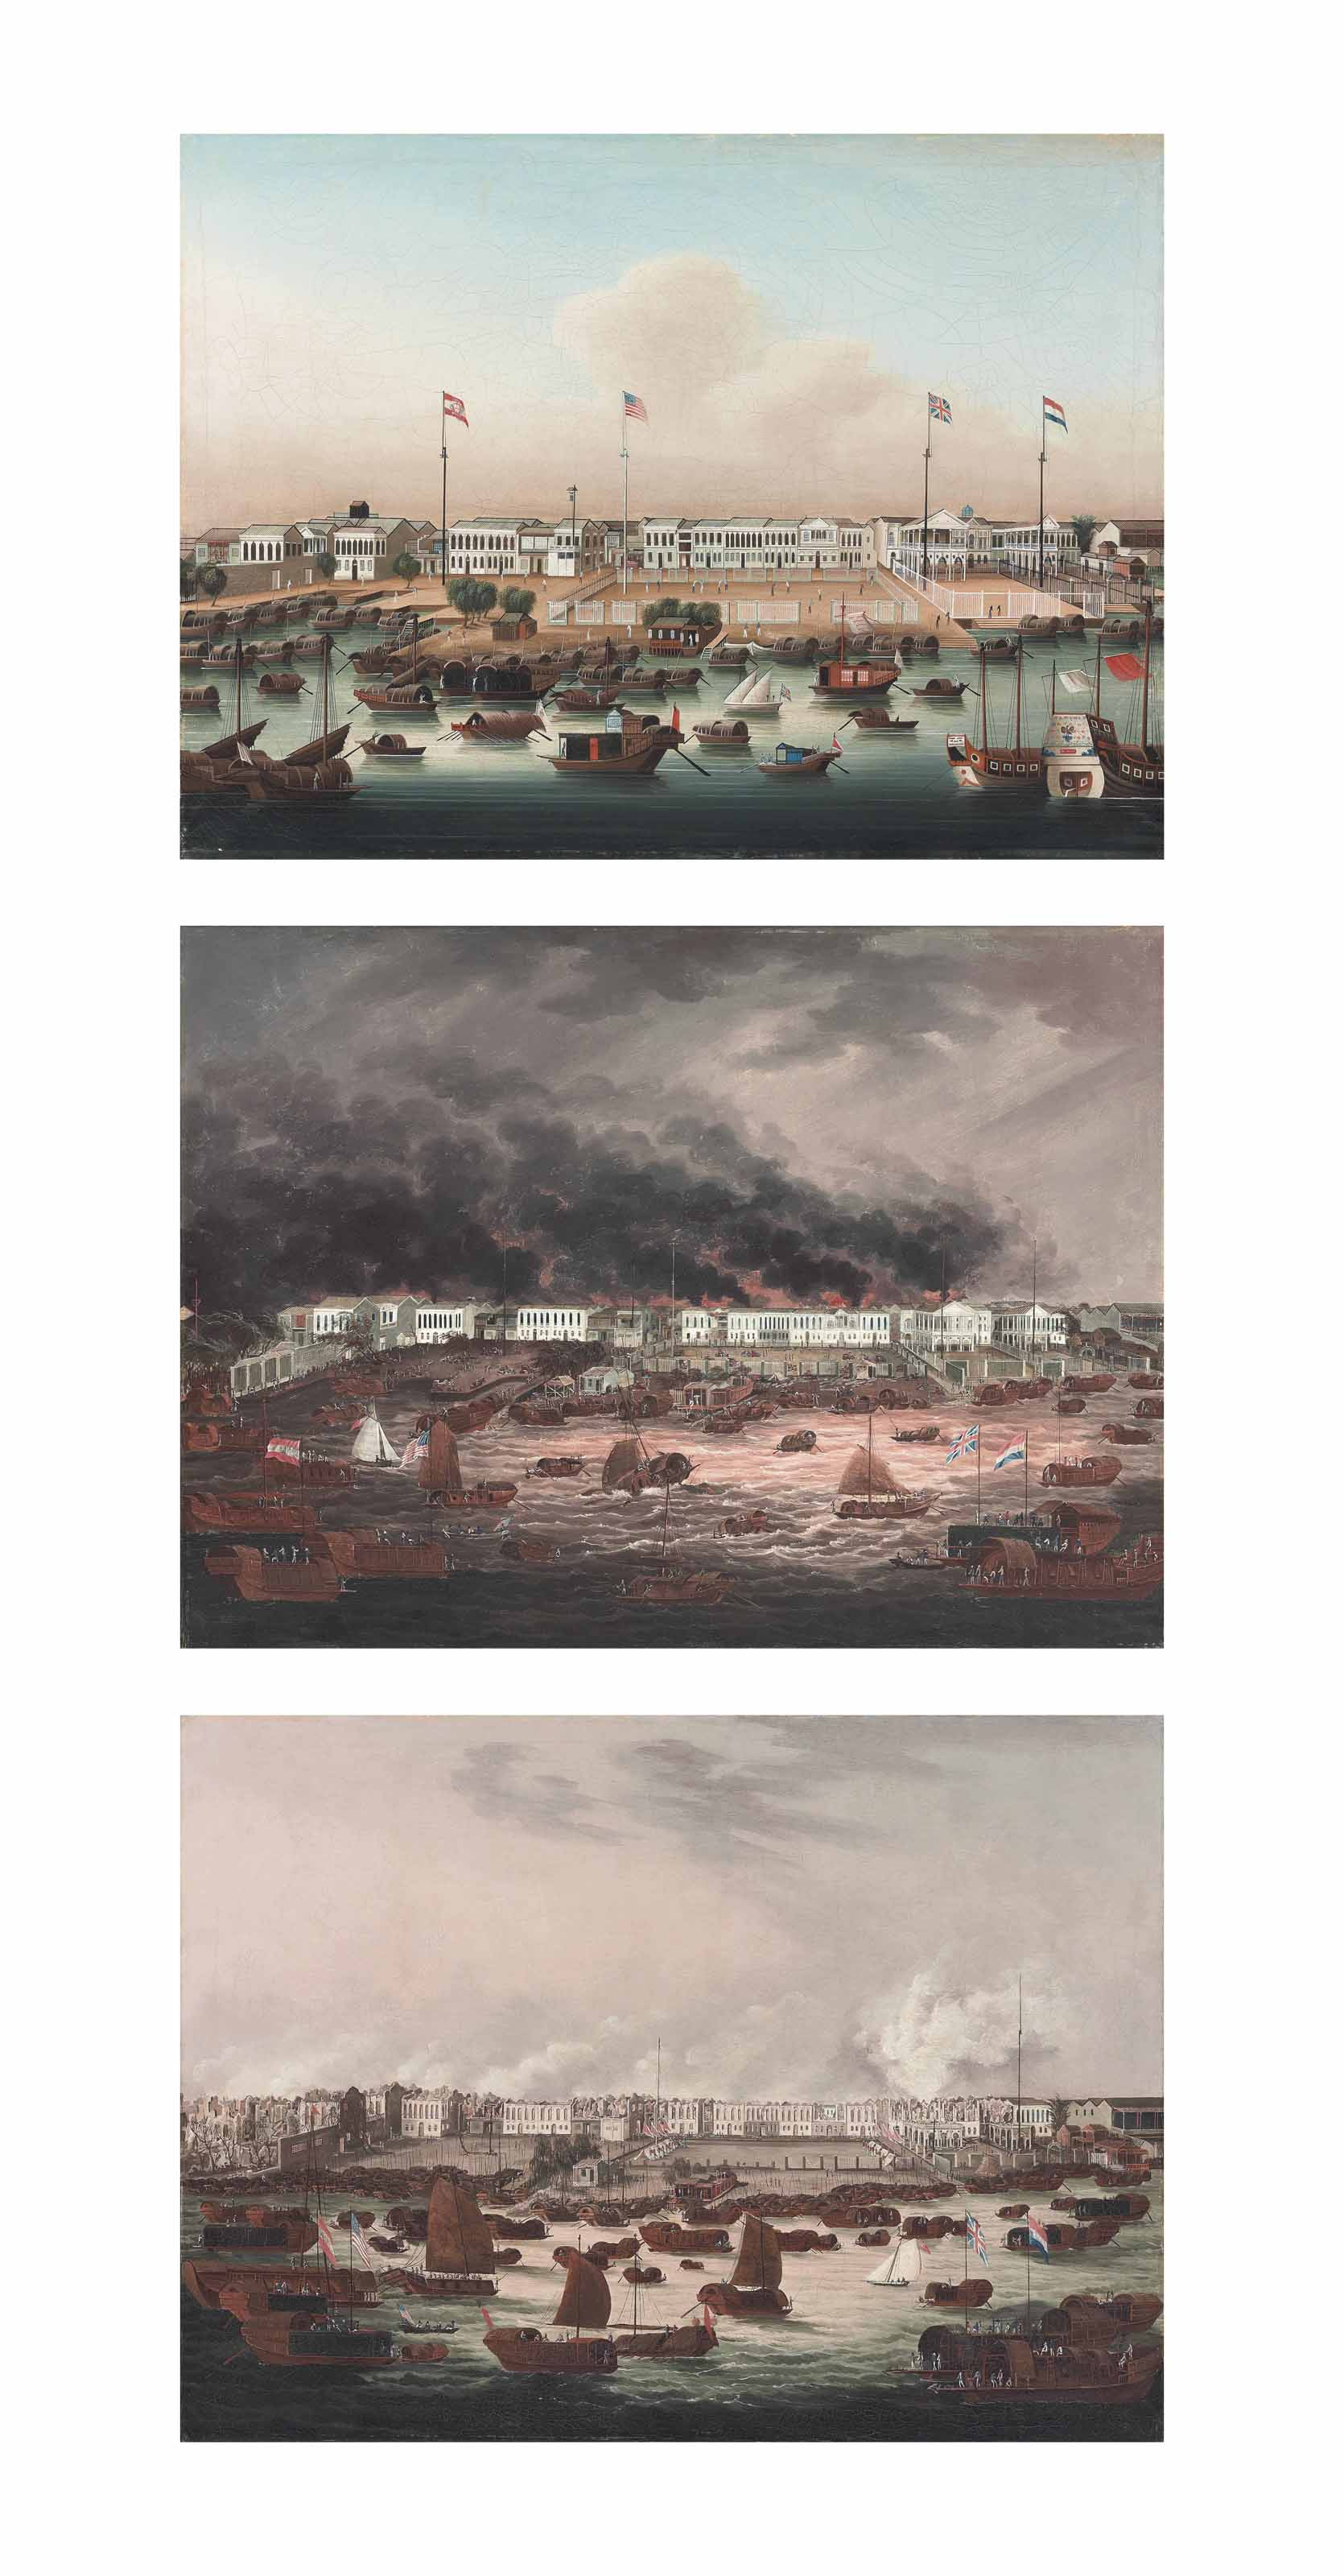 The Hongs at Canton shortly before the fire of 1822; The Hongs at Canton during the Great Fire of 1822; and The Hongs at Canton after the Great Fire of 1822